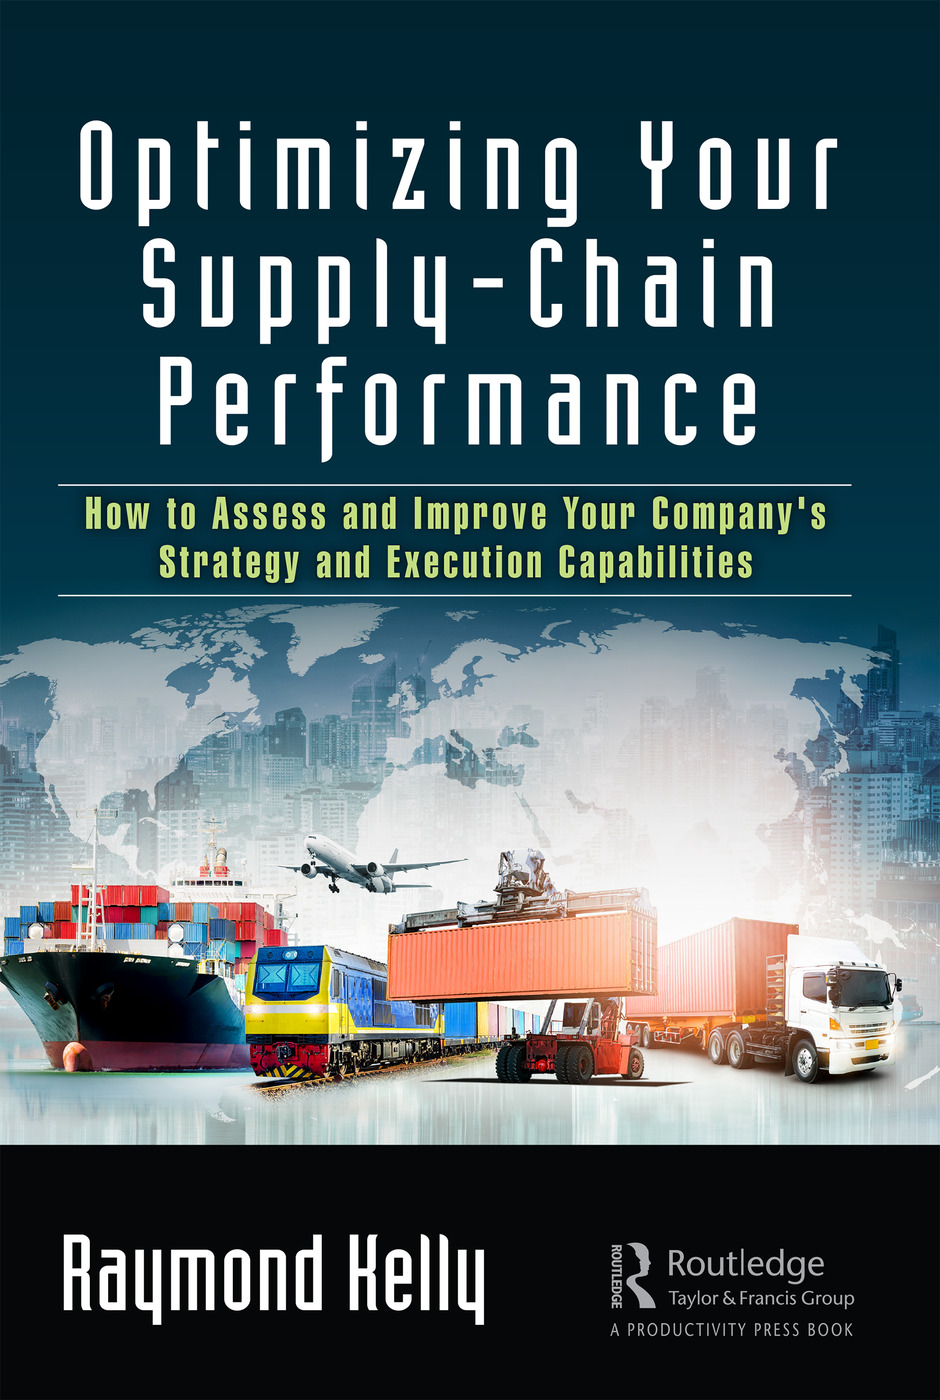 Optimizing Your Supply-Chain Performance: How to Assess and Improve Your Company's Strategy and Execution Capabilities book cover